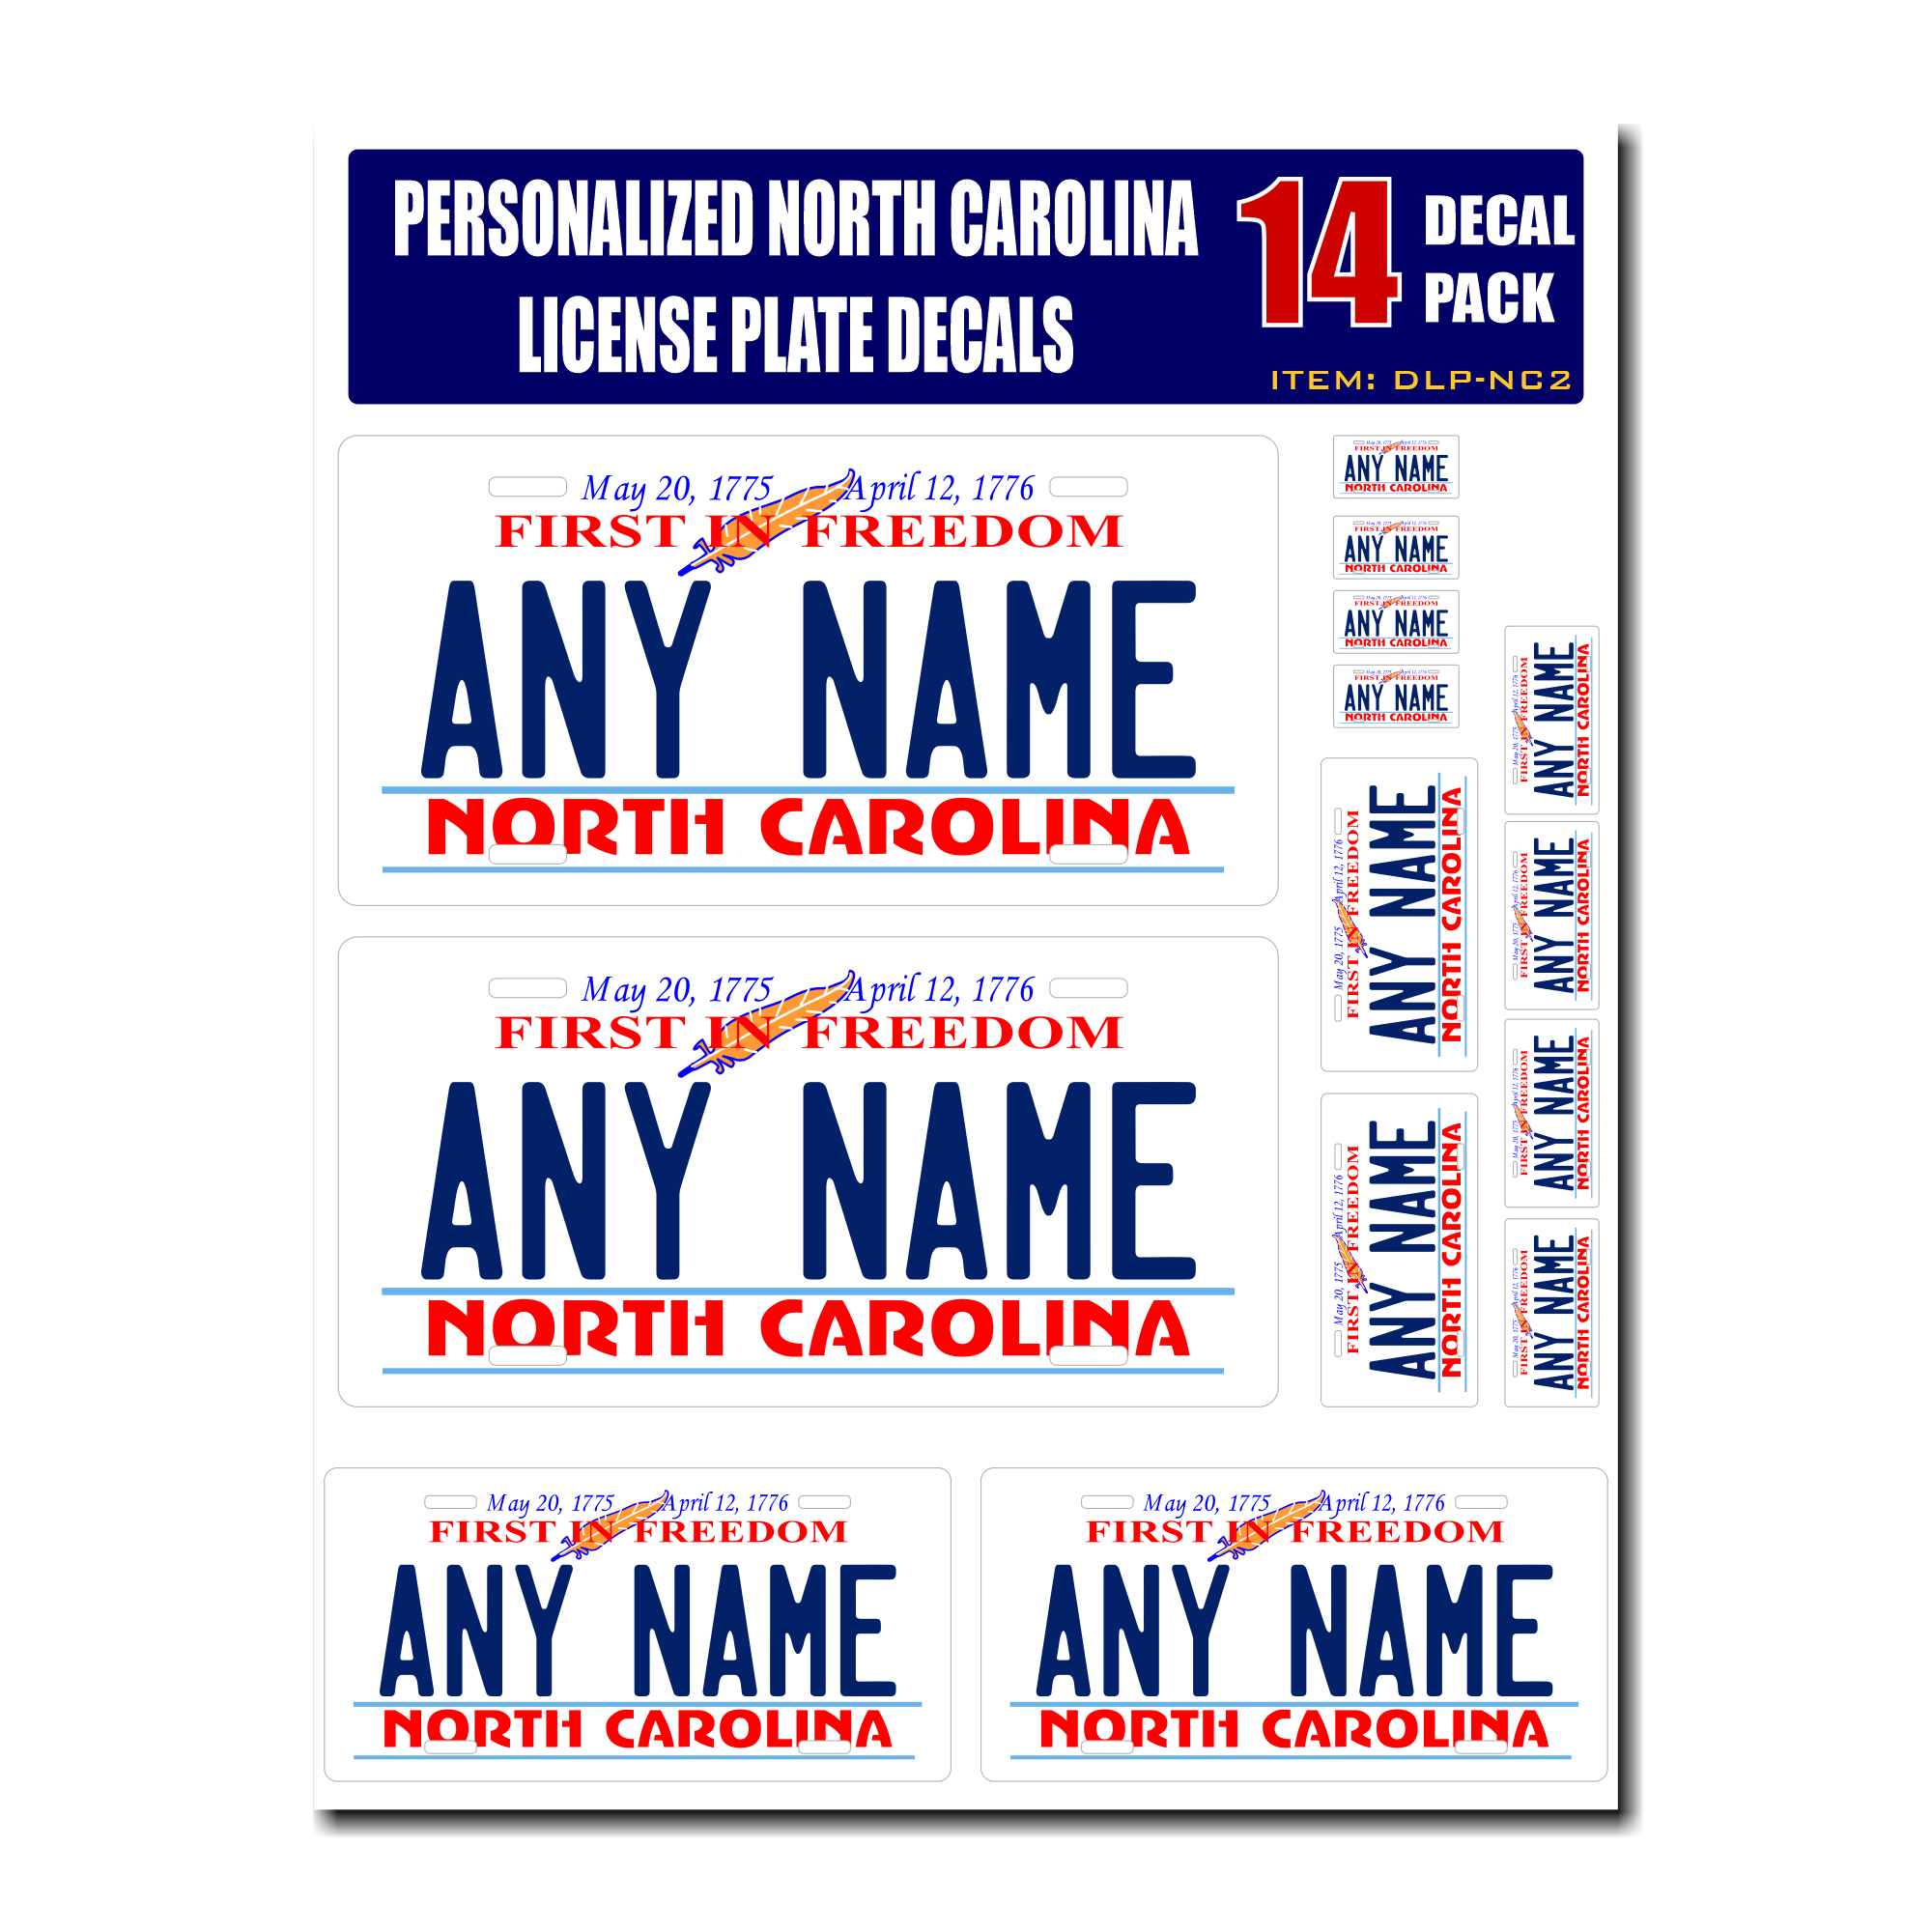 Personalized North Carolina License Plate Decals - Stickers Version 2